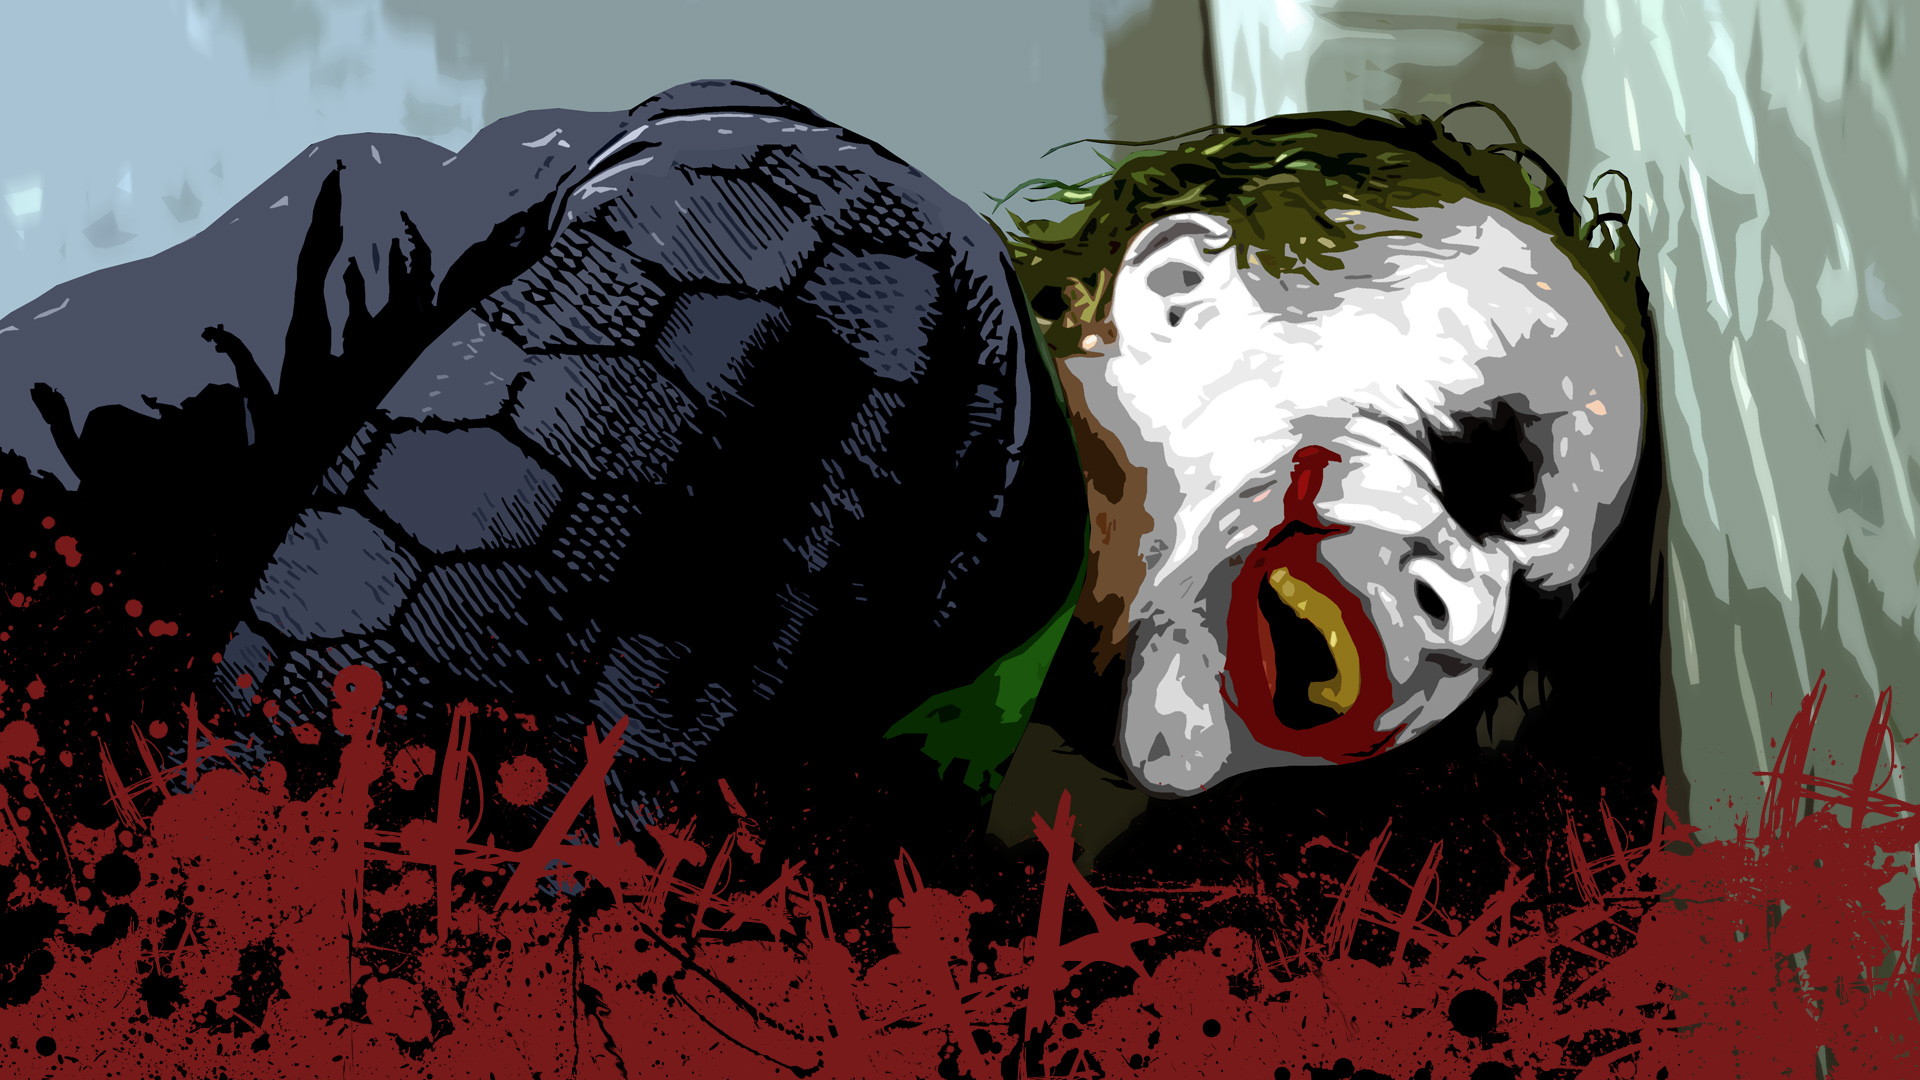 joker wallpapers downloadwallpaperorg